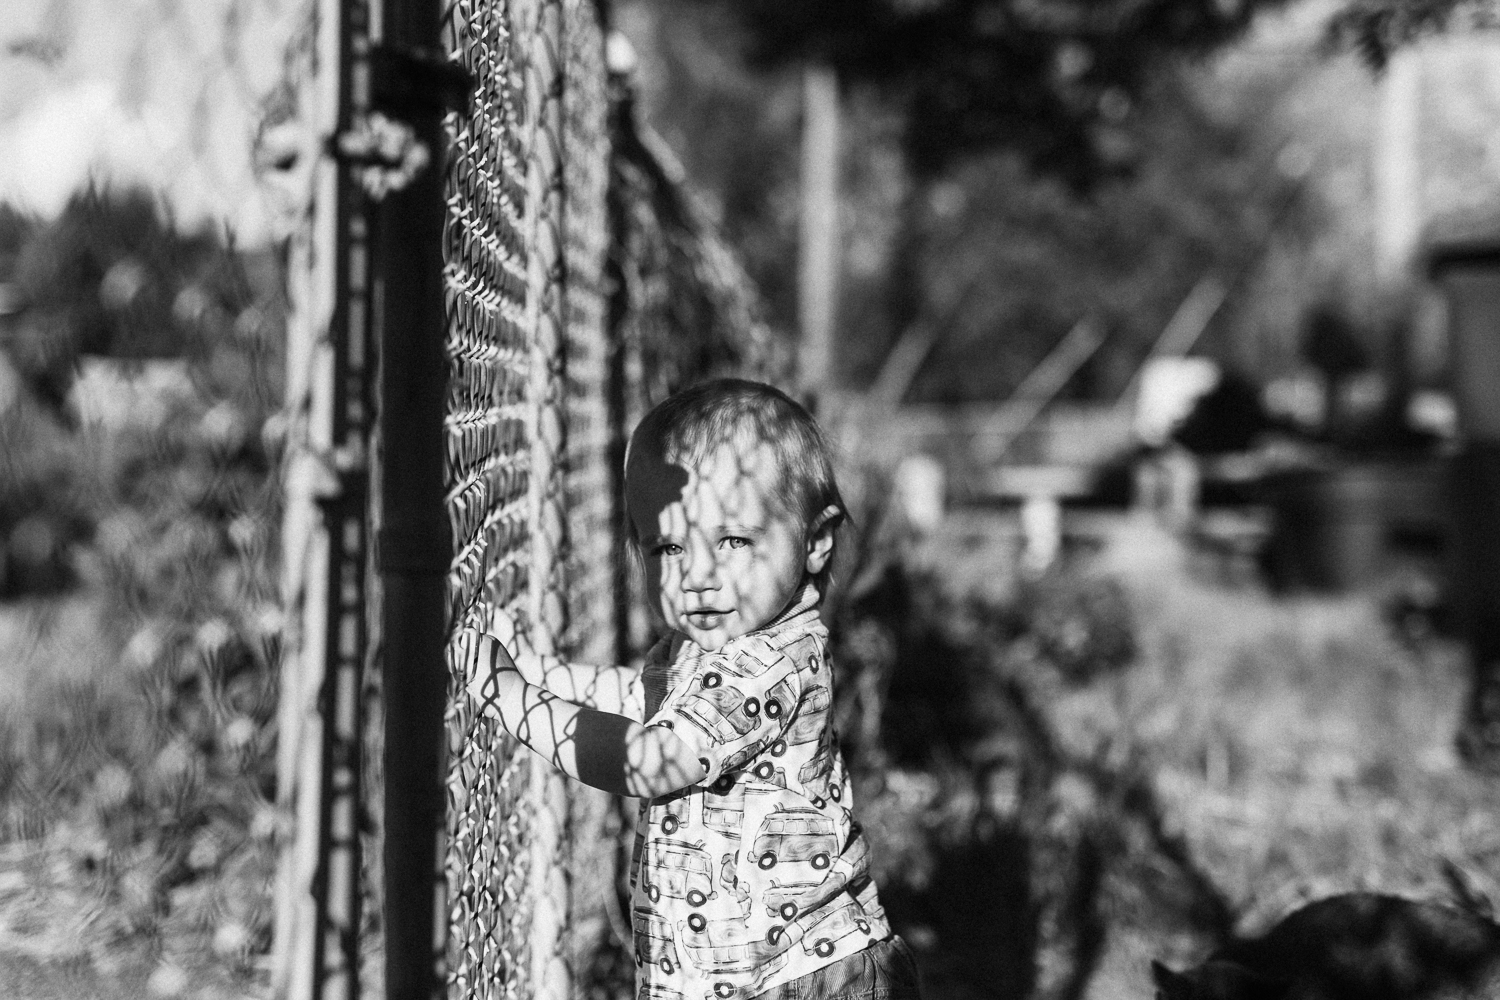 natural-and-artistic-black-and-white-fence-shadows-on-little-boys-face-slc-utah